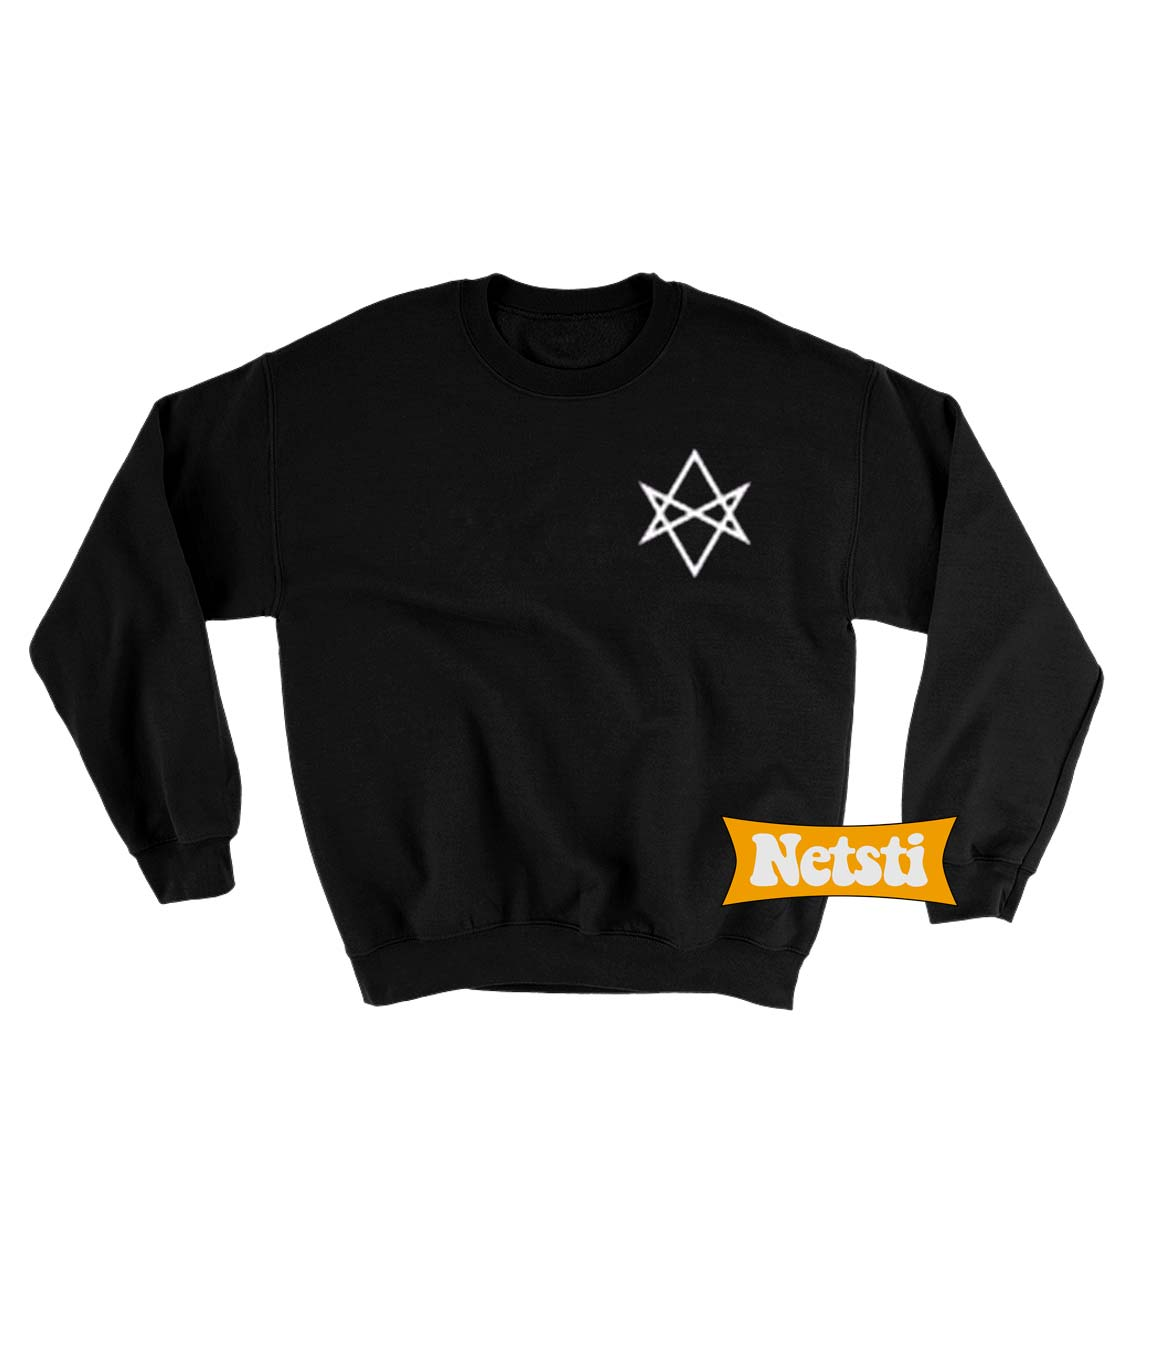 Bring Me The Horizon Symbol Chic Fashion Sweatshirt Netsti Chic Fashion And Clothing Shop